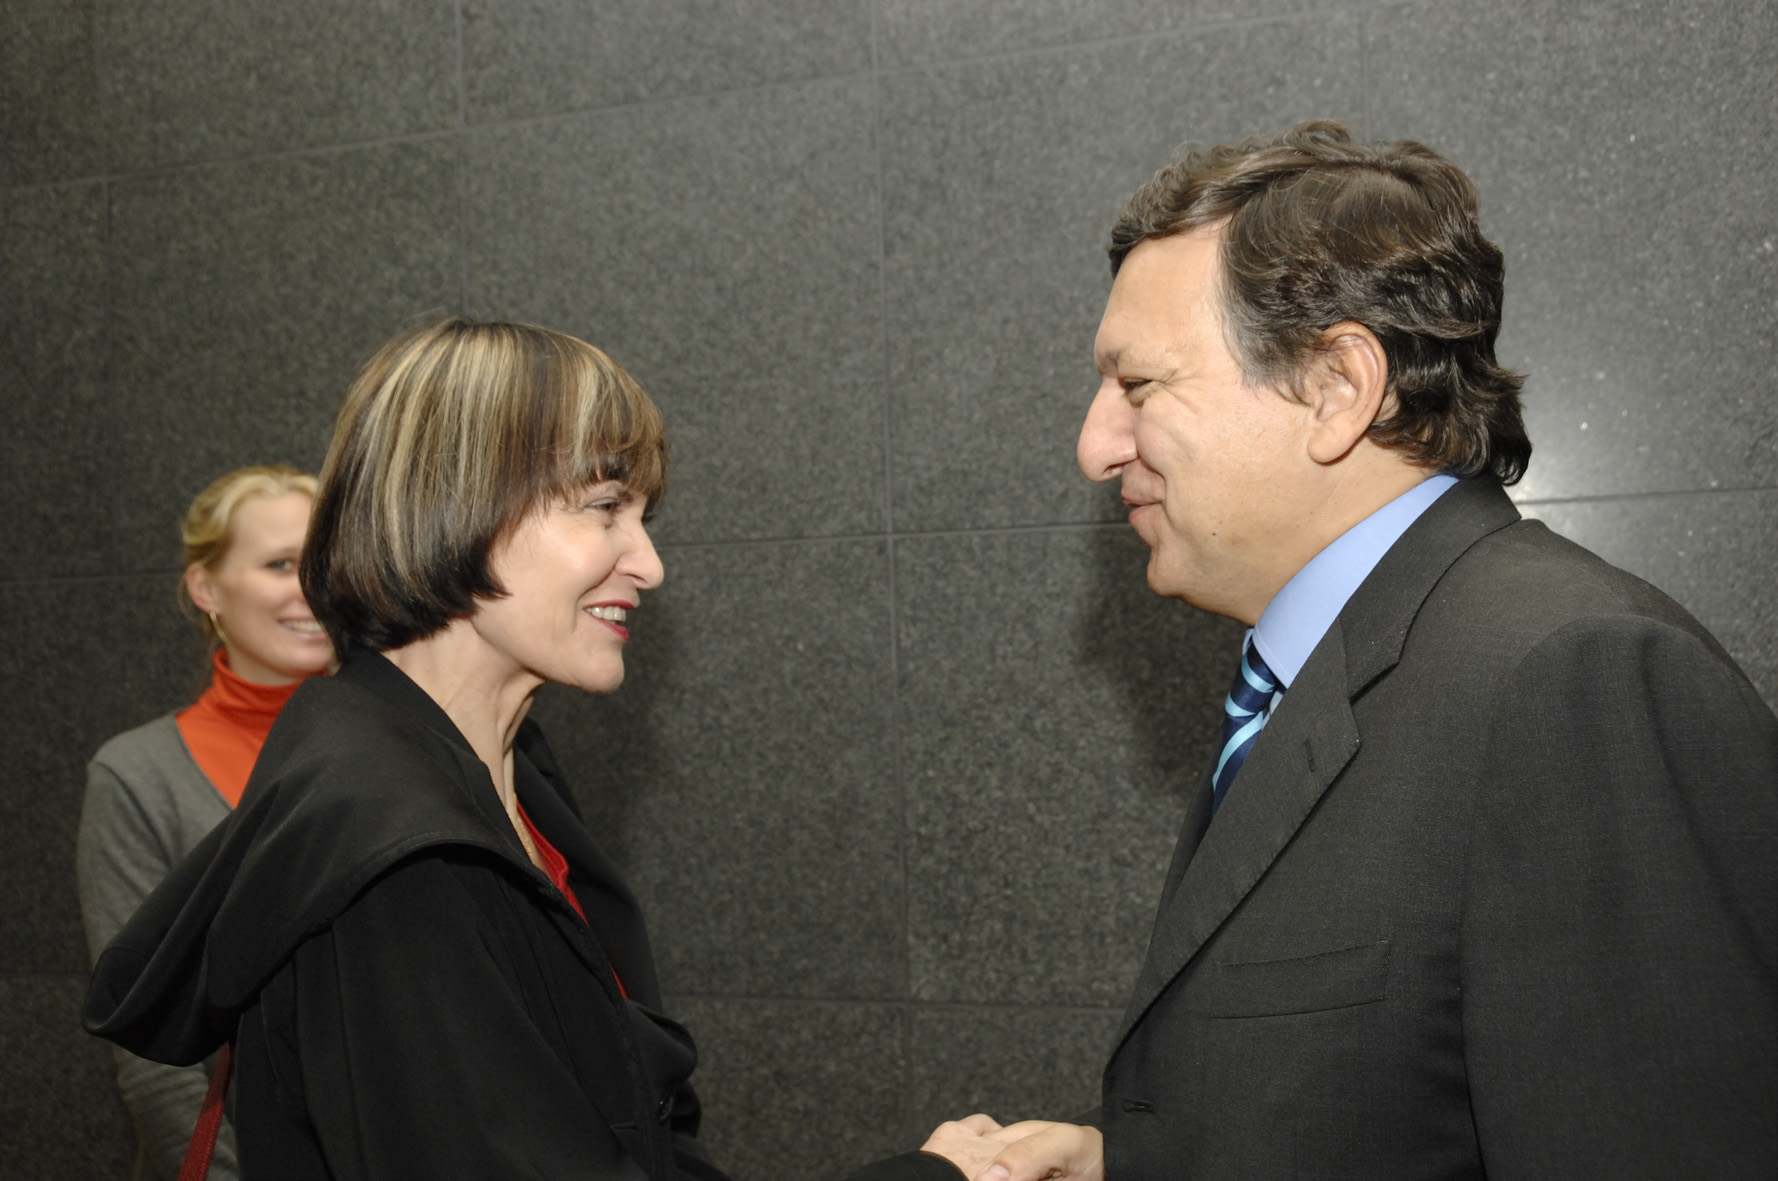 Visit by Micheline Calmy-Rey, President of the Swiss Confederation to the EC